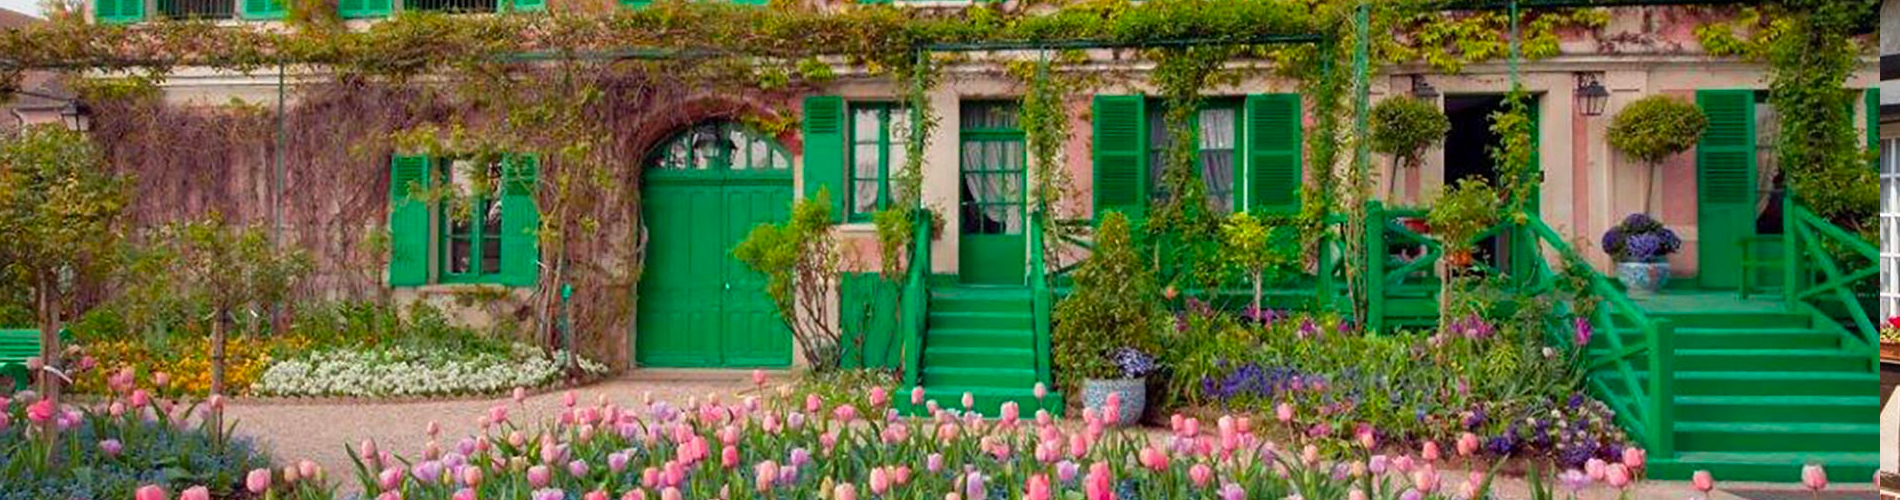 1900x500_top21giverny